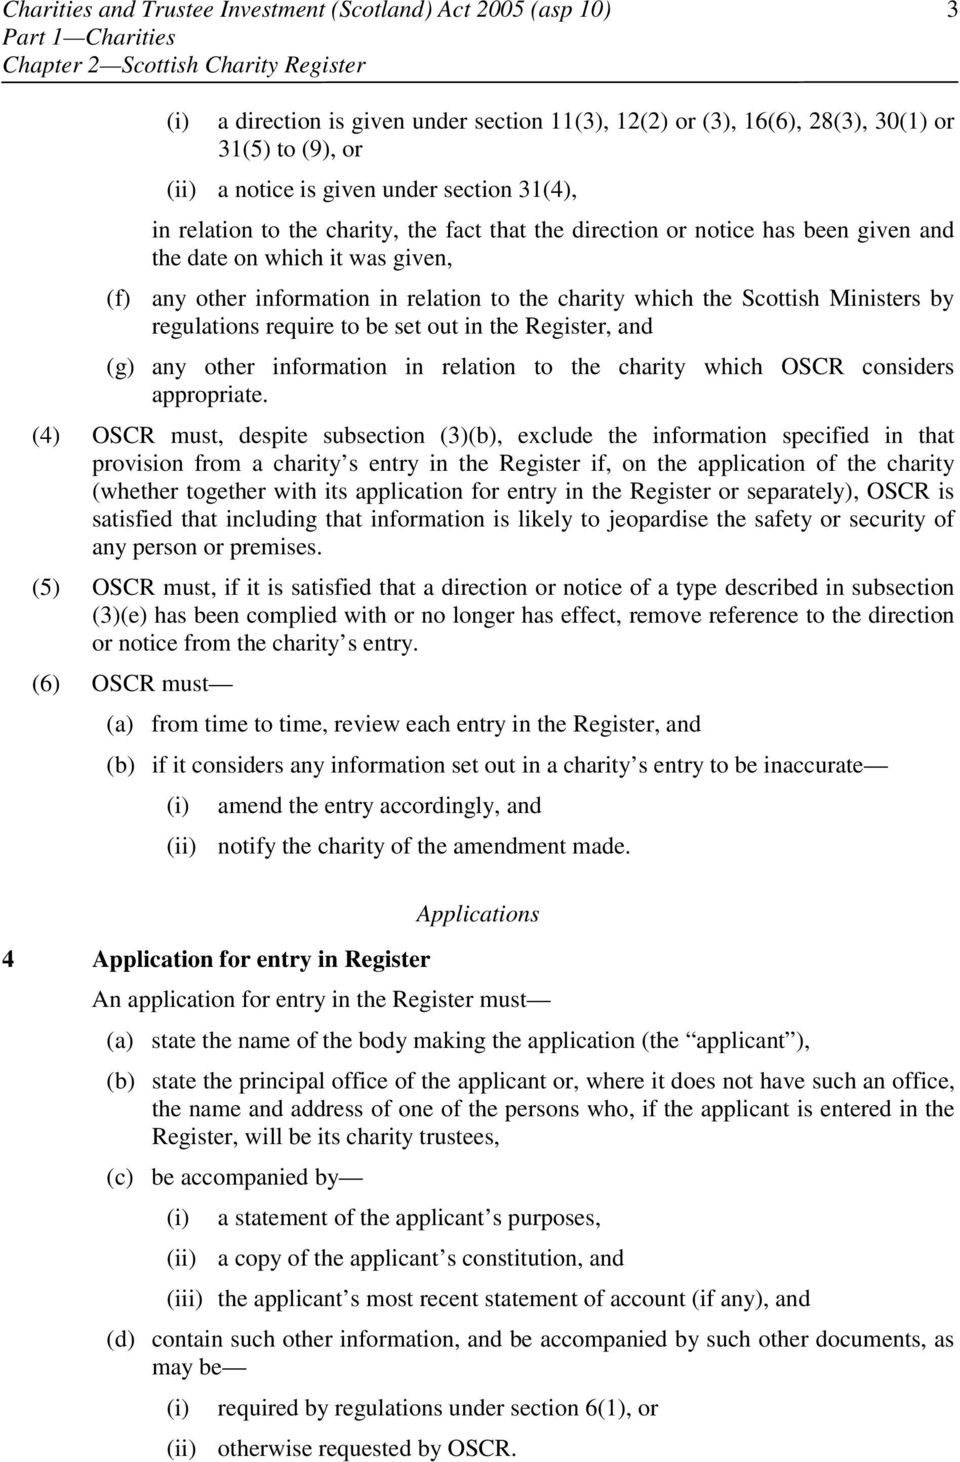 to the charity which the Scottish Ministers by regulations require to be set out in the Register, and (g) any other information in relation to the charity which OSCR considers appropriate.